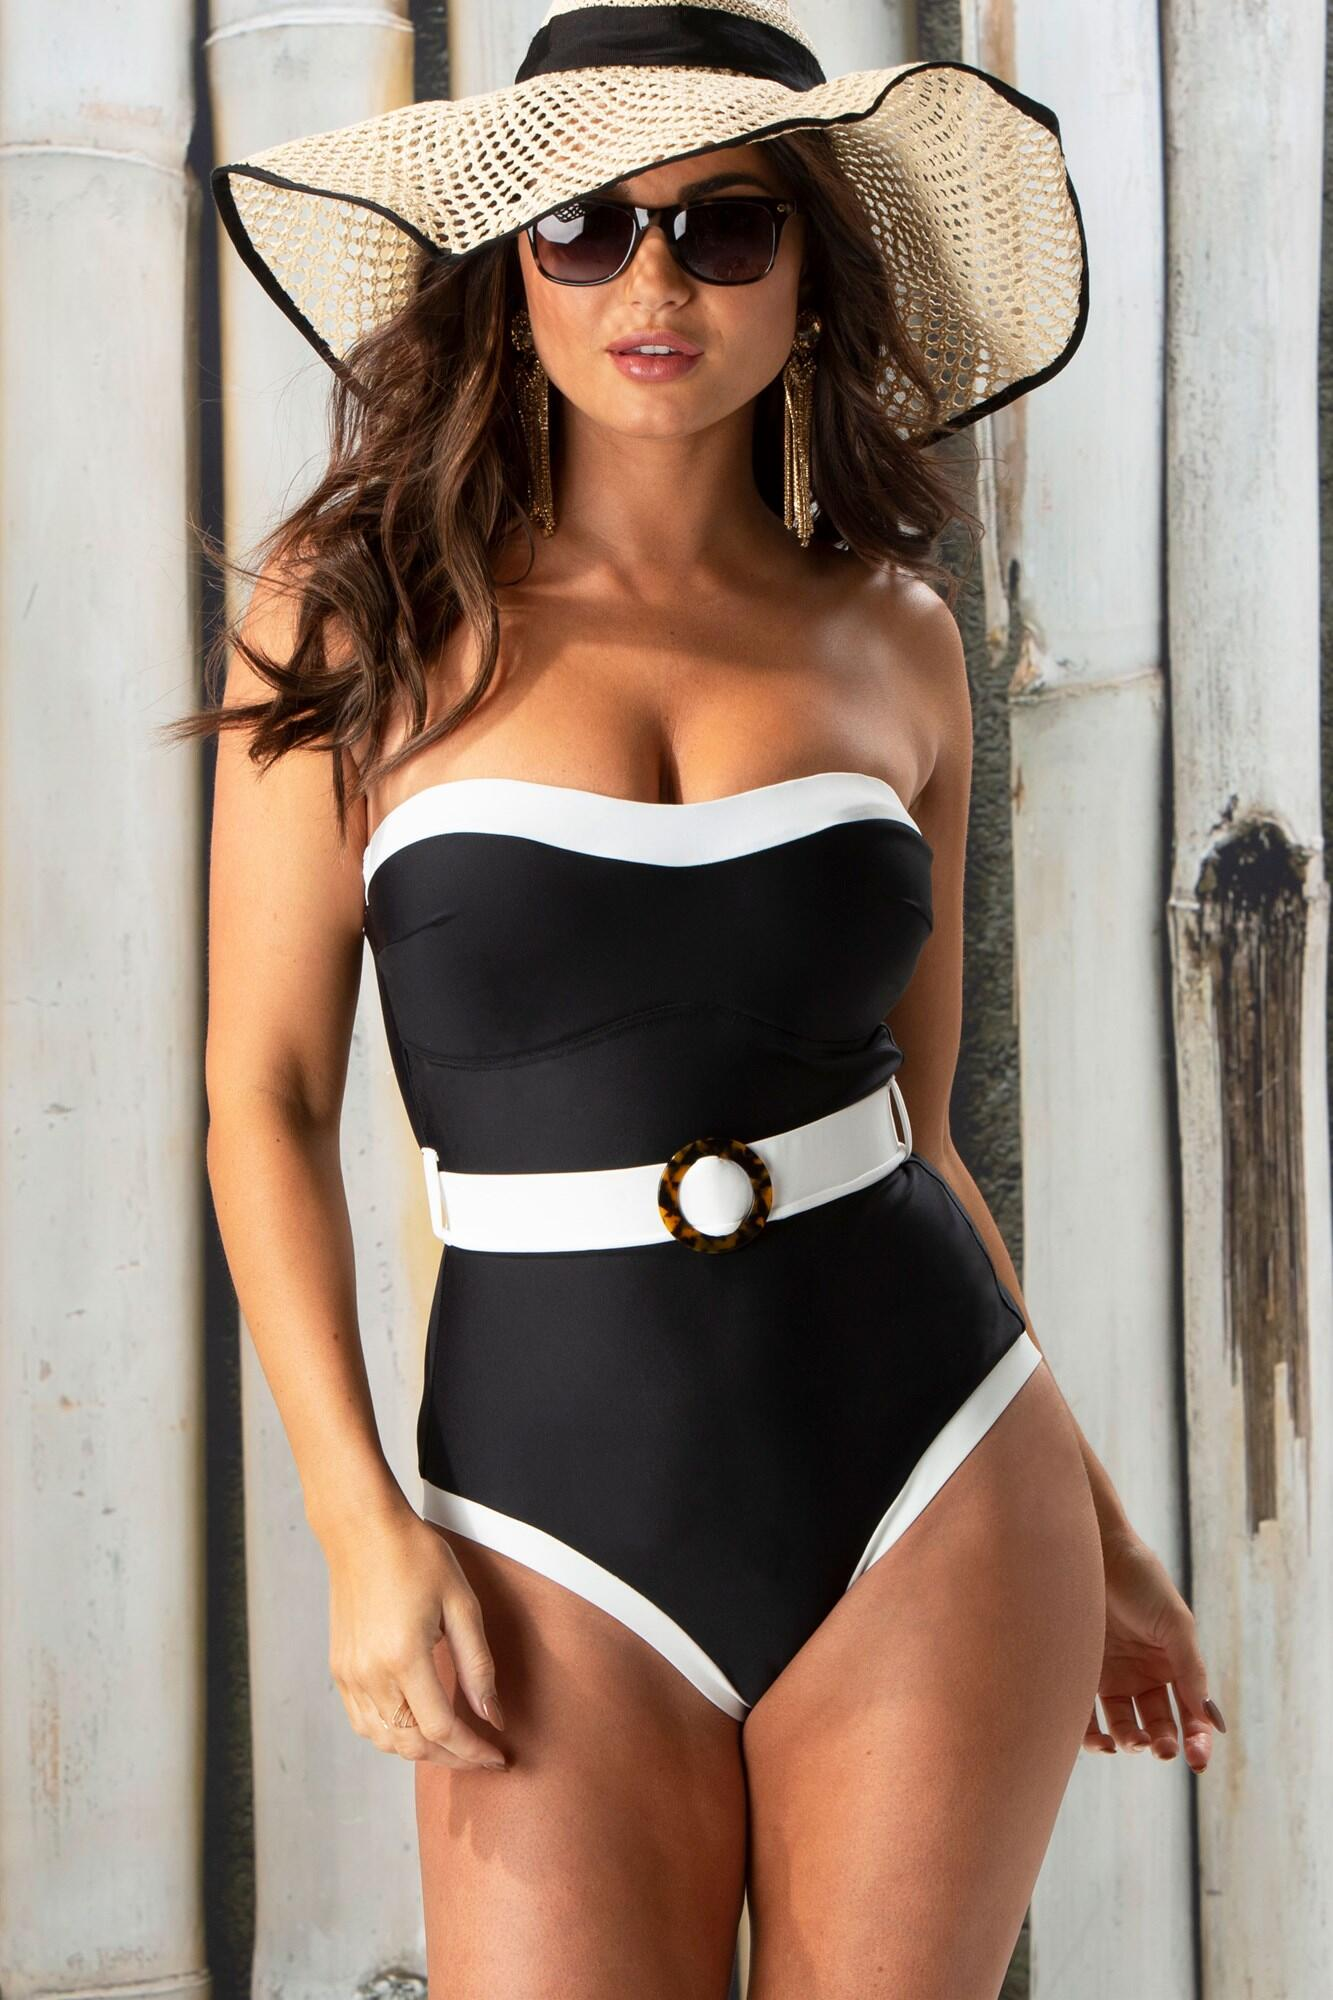 Removable Straps Belted Control Swimsuit - Black/White